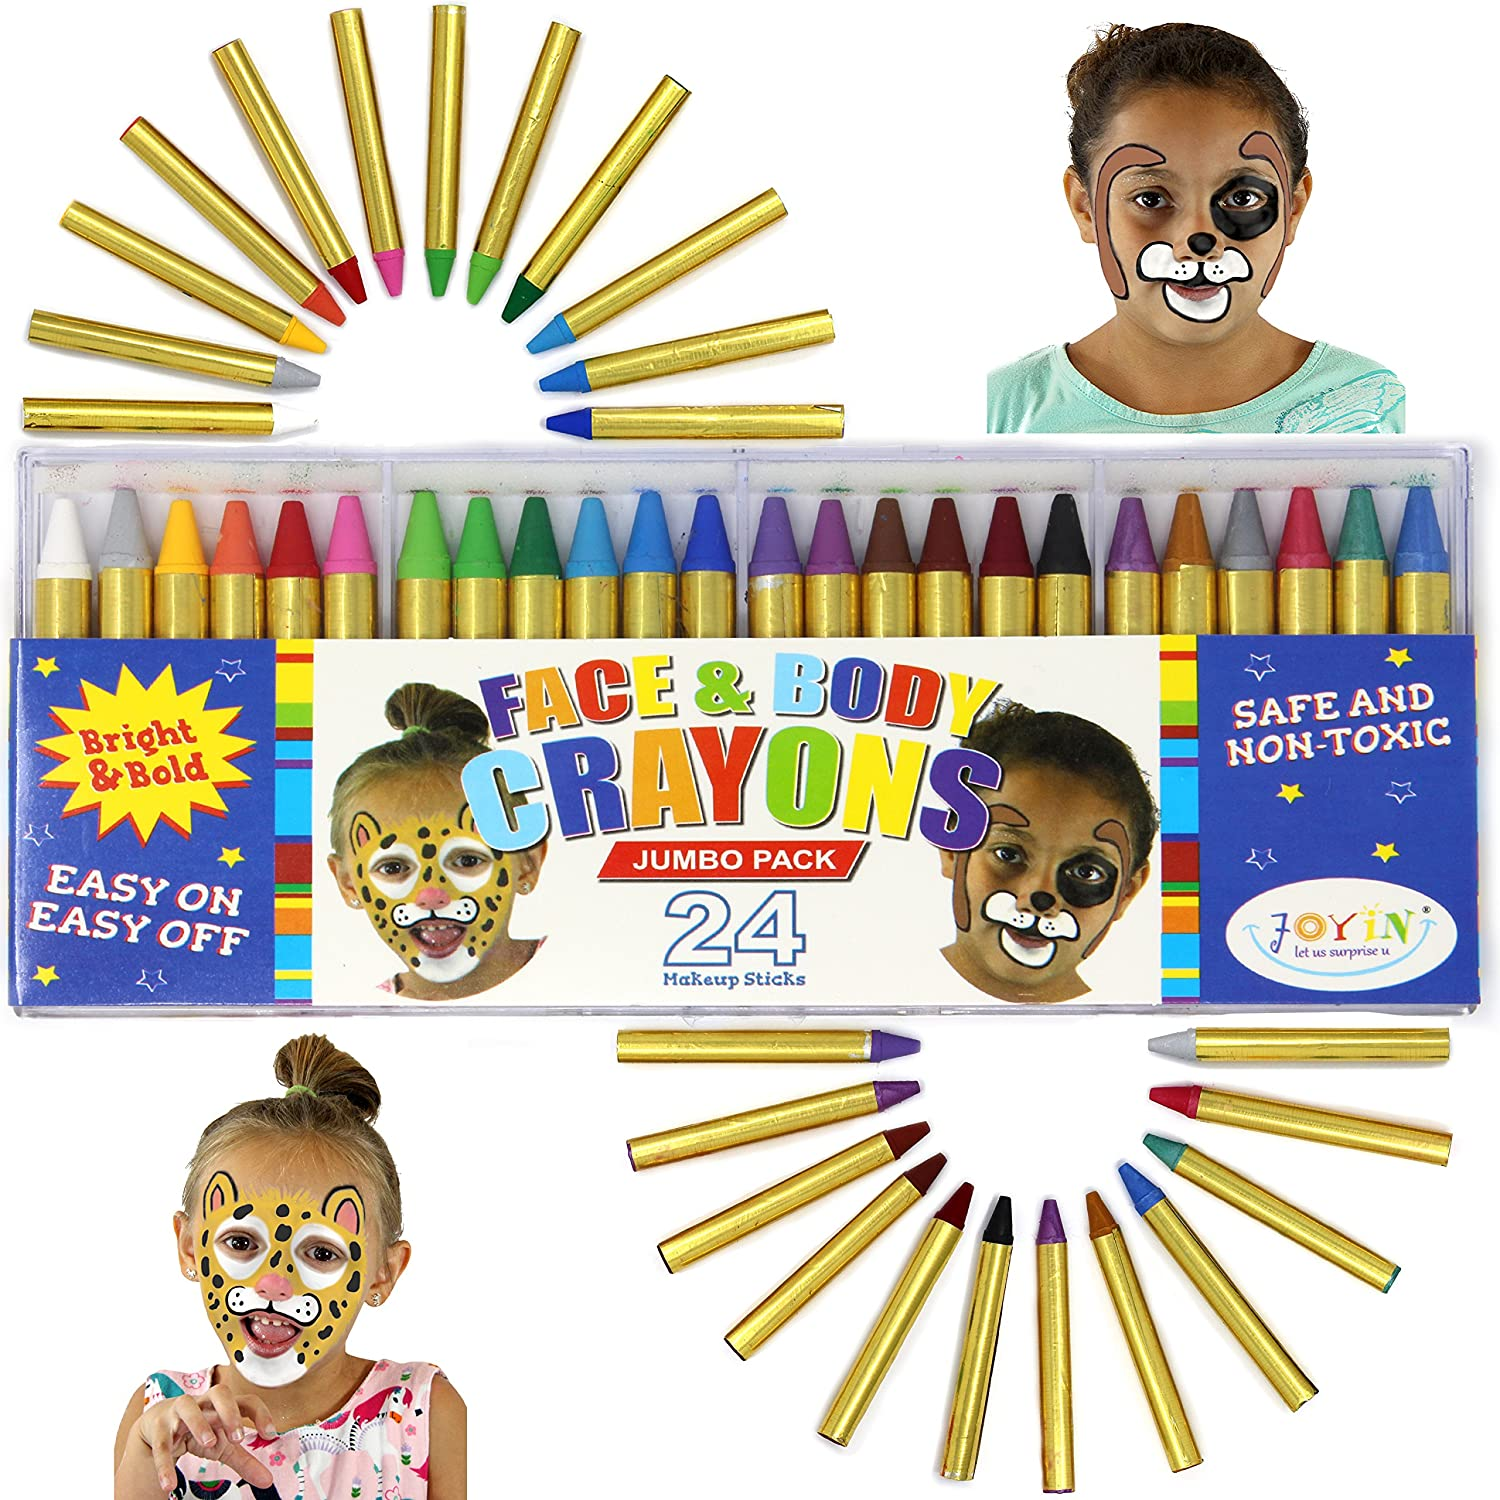 JOYIN 55% OFF 24 Colors Los Angeles Mall Face Paint Non-Toxic Safe and Crayon Body